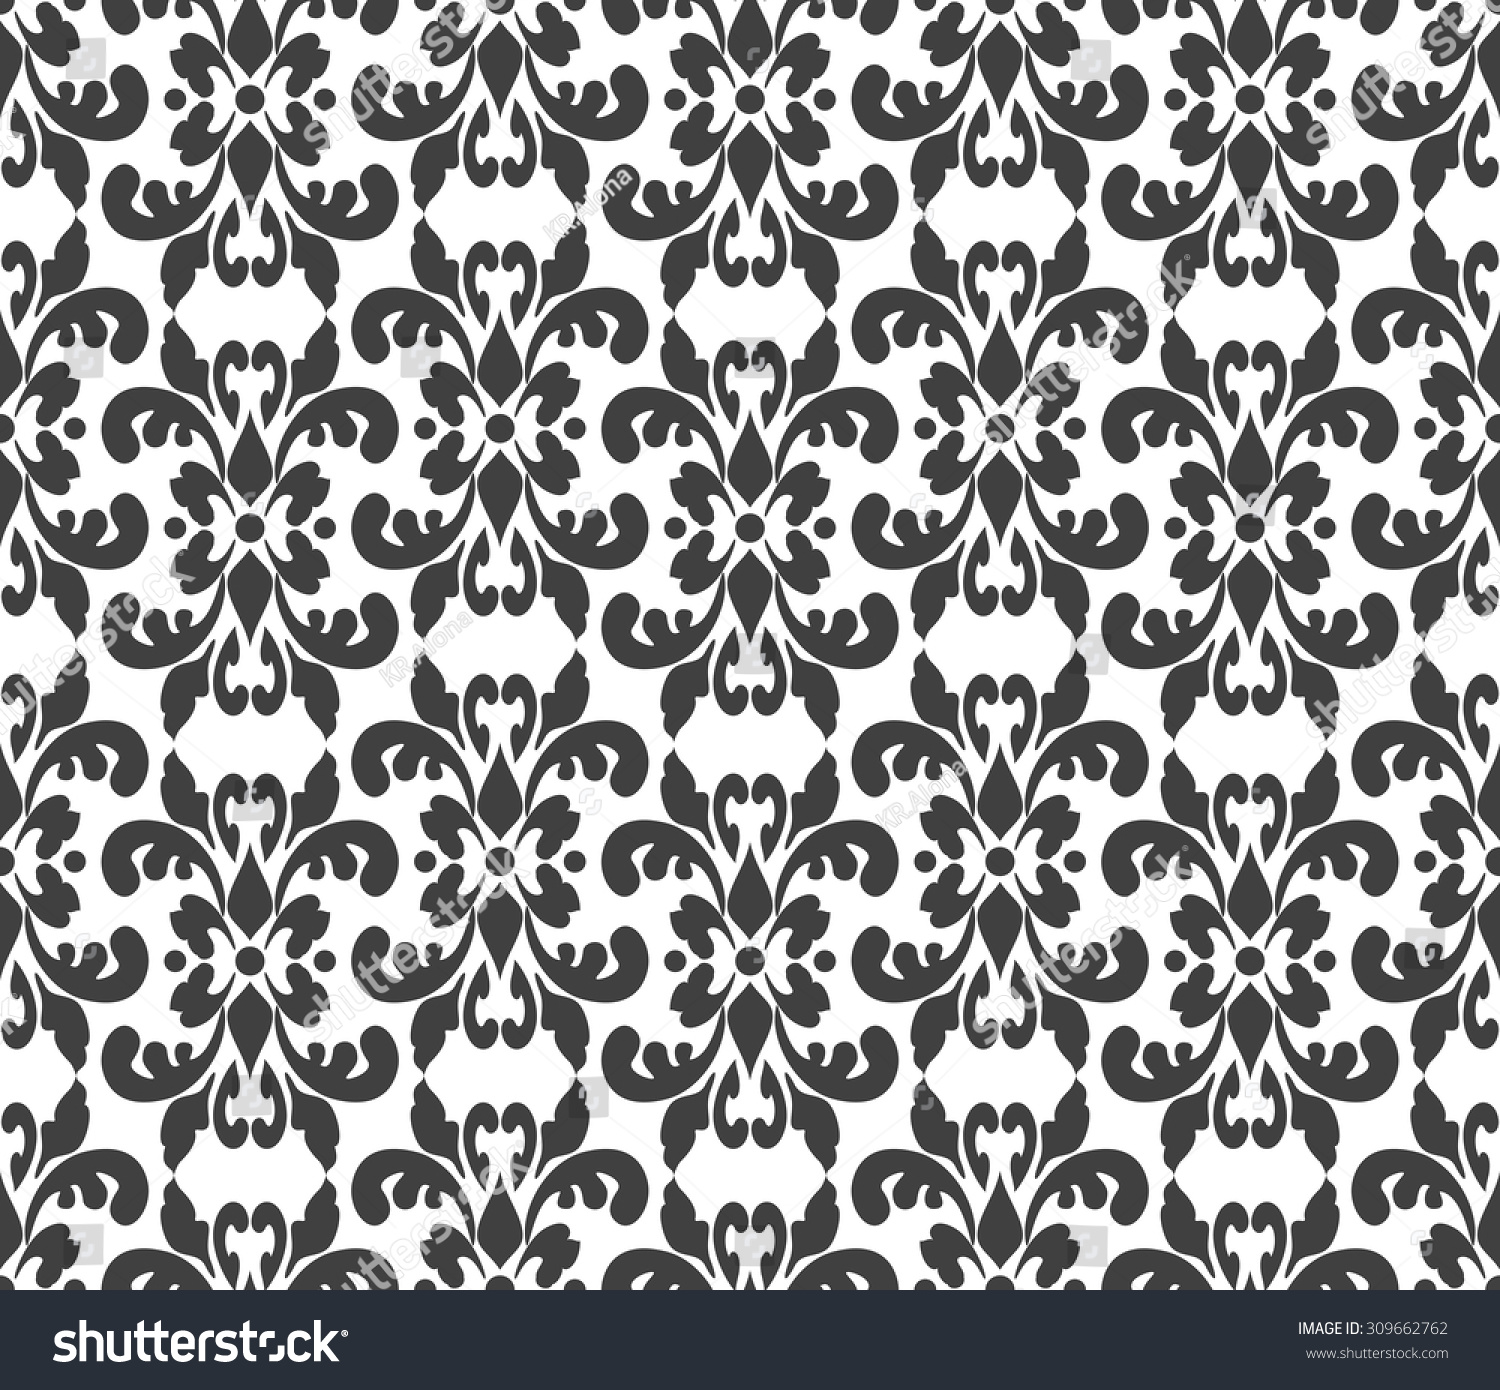 Black White Elegant Damask Wallpaper Vintage Stock Vector Royalty